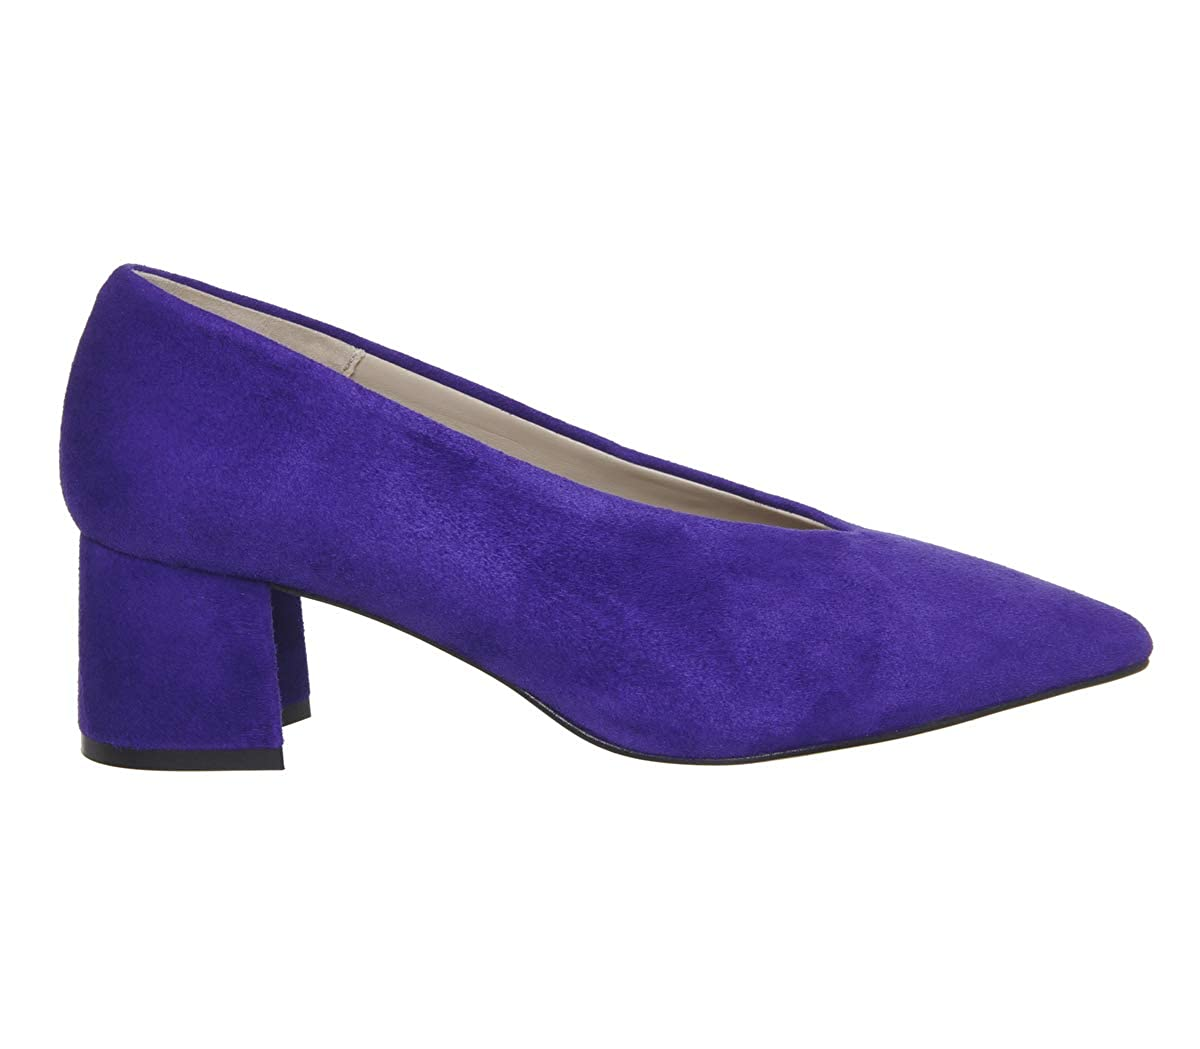 Unbekannt Damen Office, Damen Unbekannt Pumps Violettes Wildleder 80e678